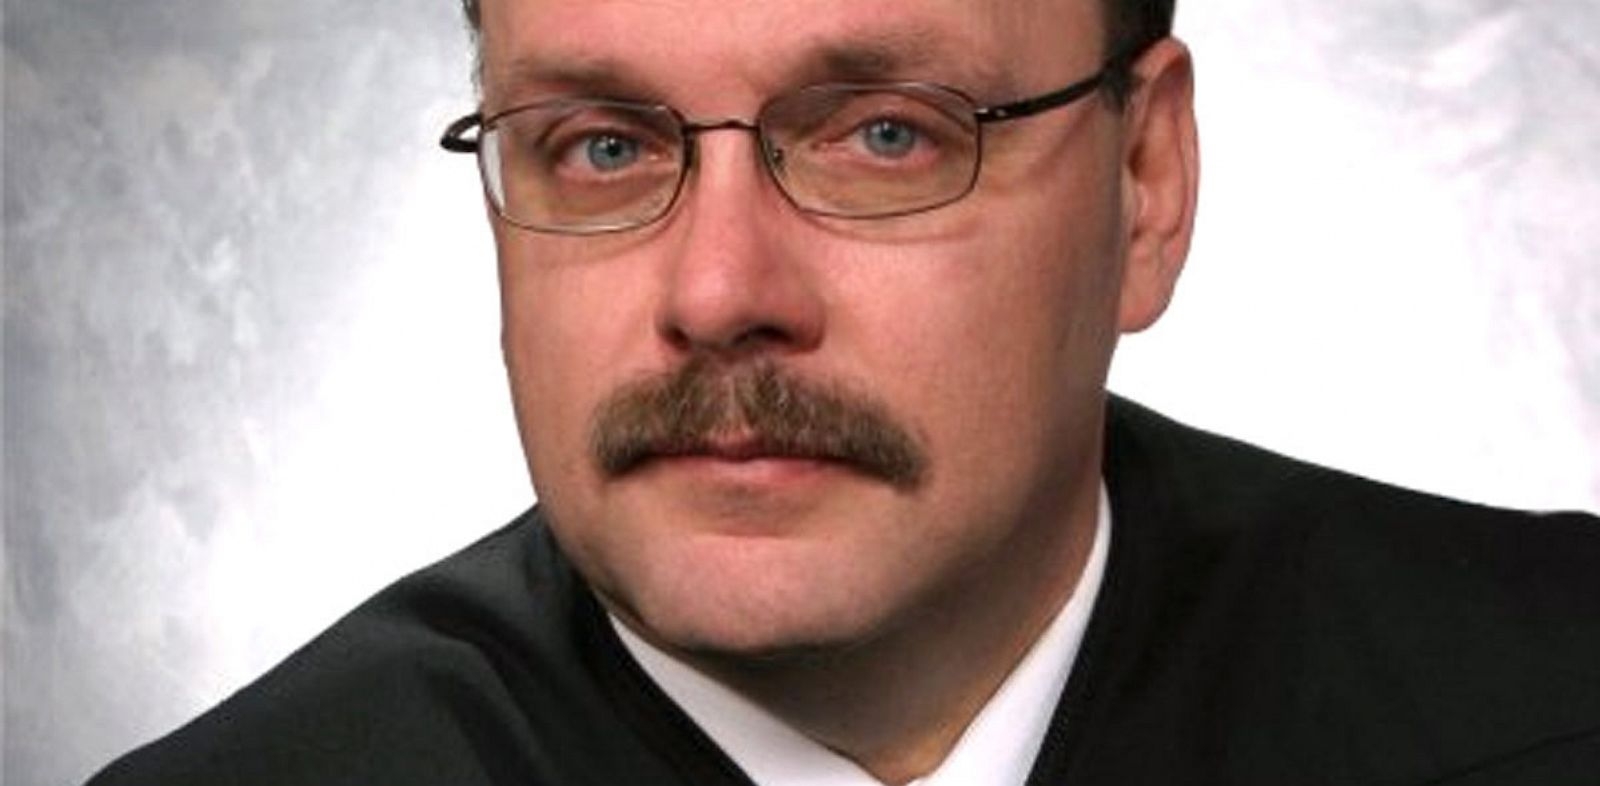 PHOTO: Judge Michael J. Holbrook